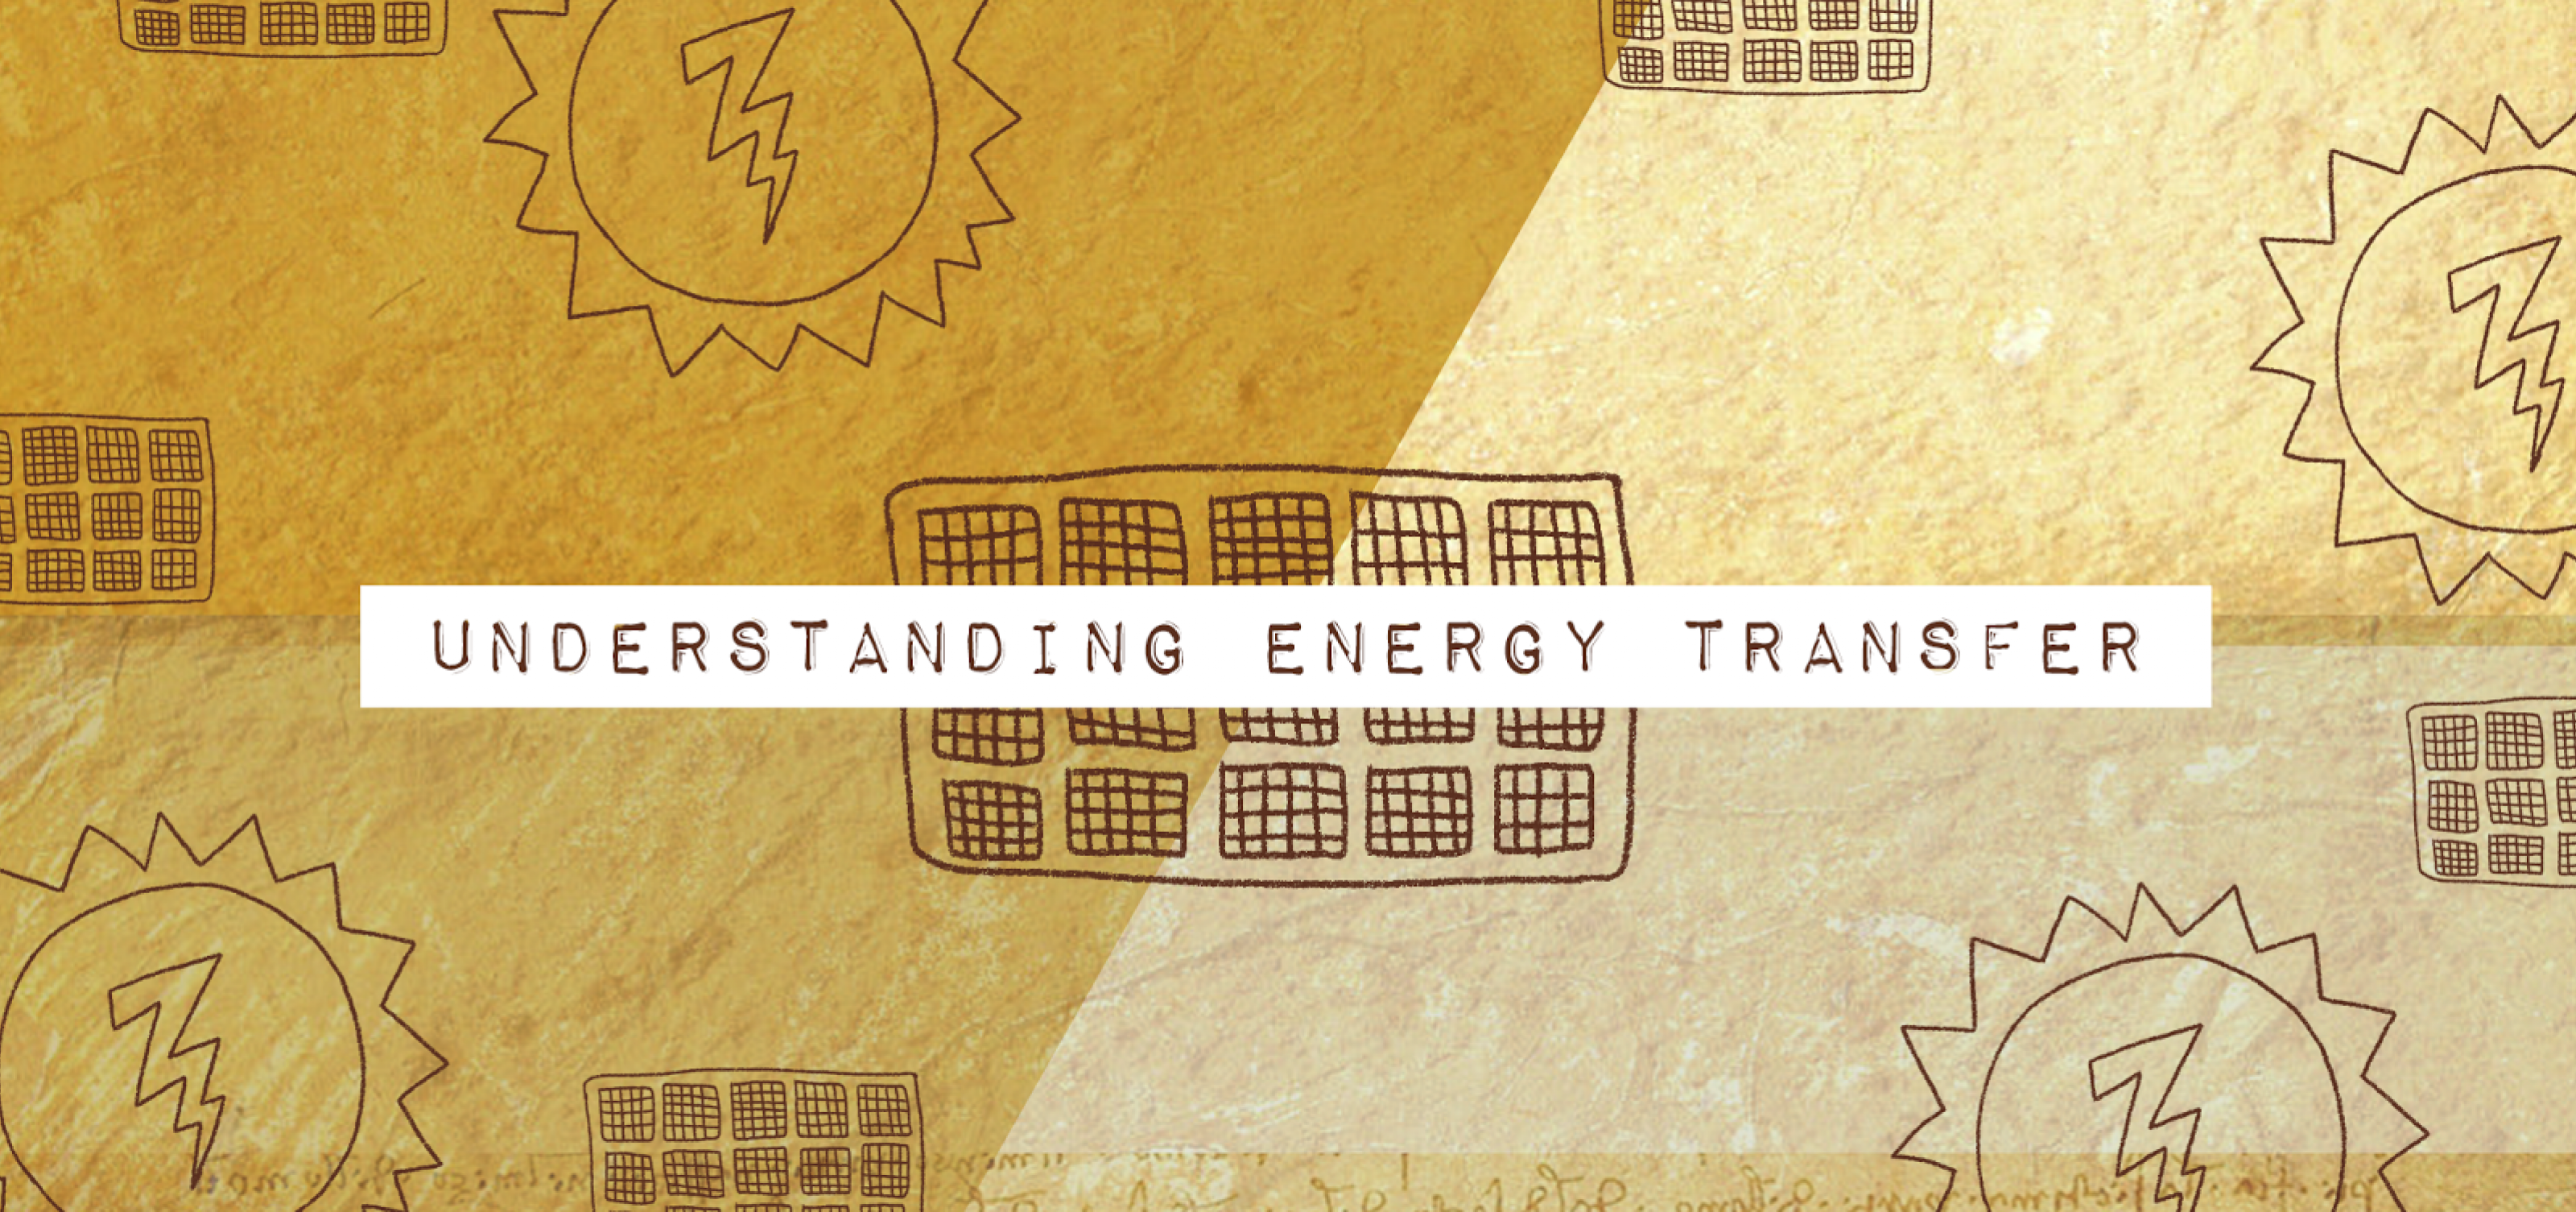 engineering.stanford.edu   Illustration by Stefani Billings   Researchers are developing heat extraction methods to make solar thermal plants more viable.